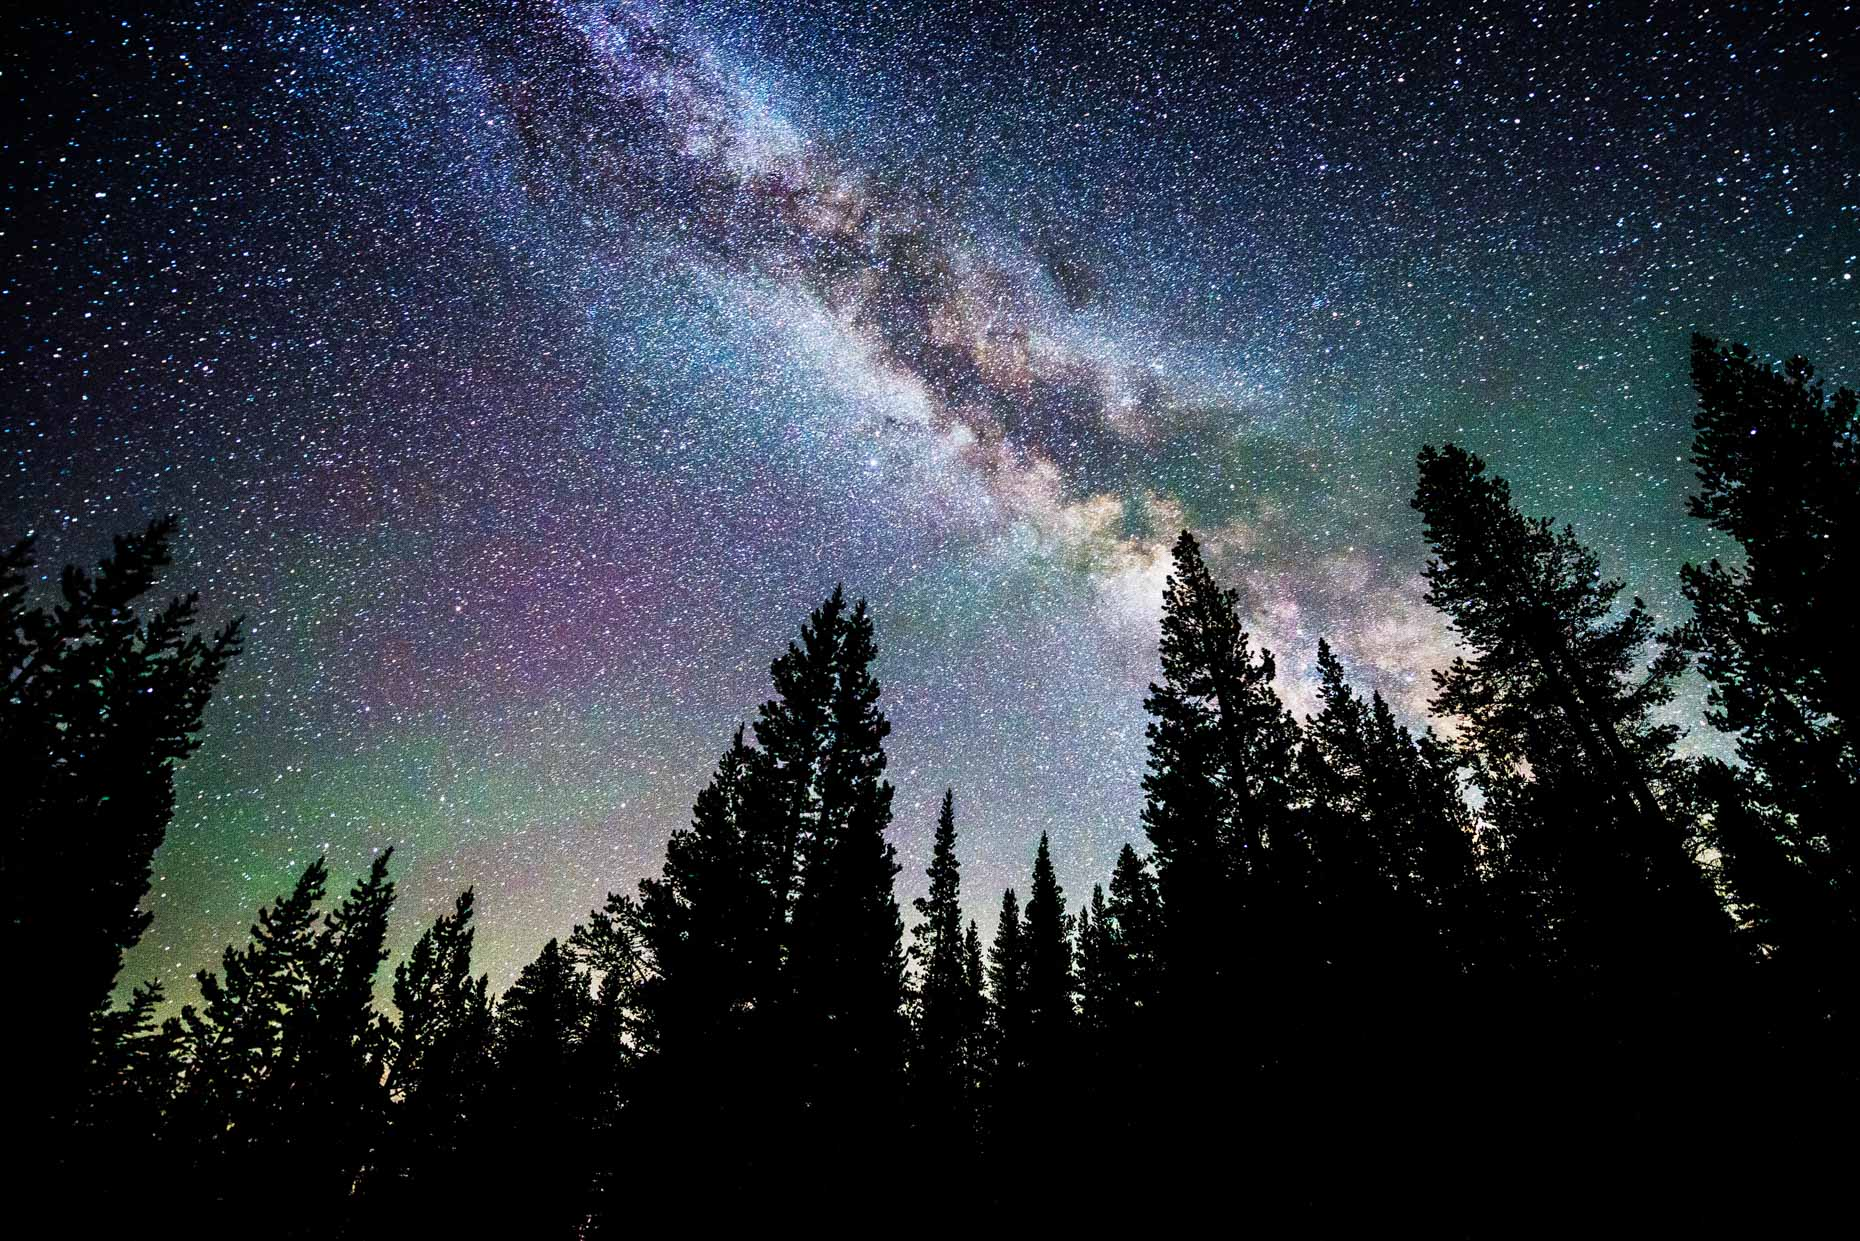 Night Sky - Milky Way And Stars Over Trees - Lake Tahoe, Nevada